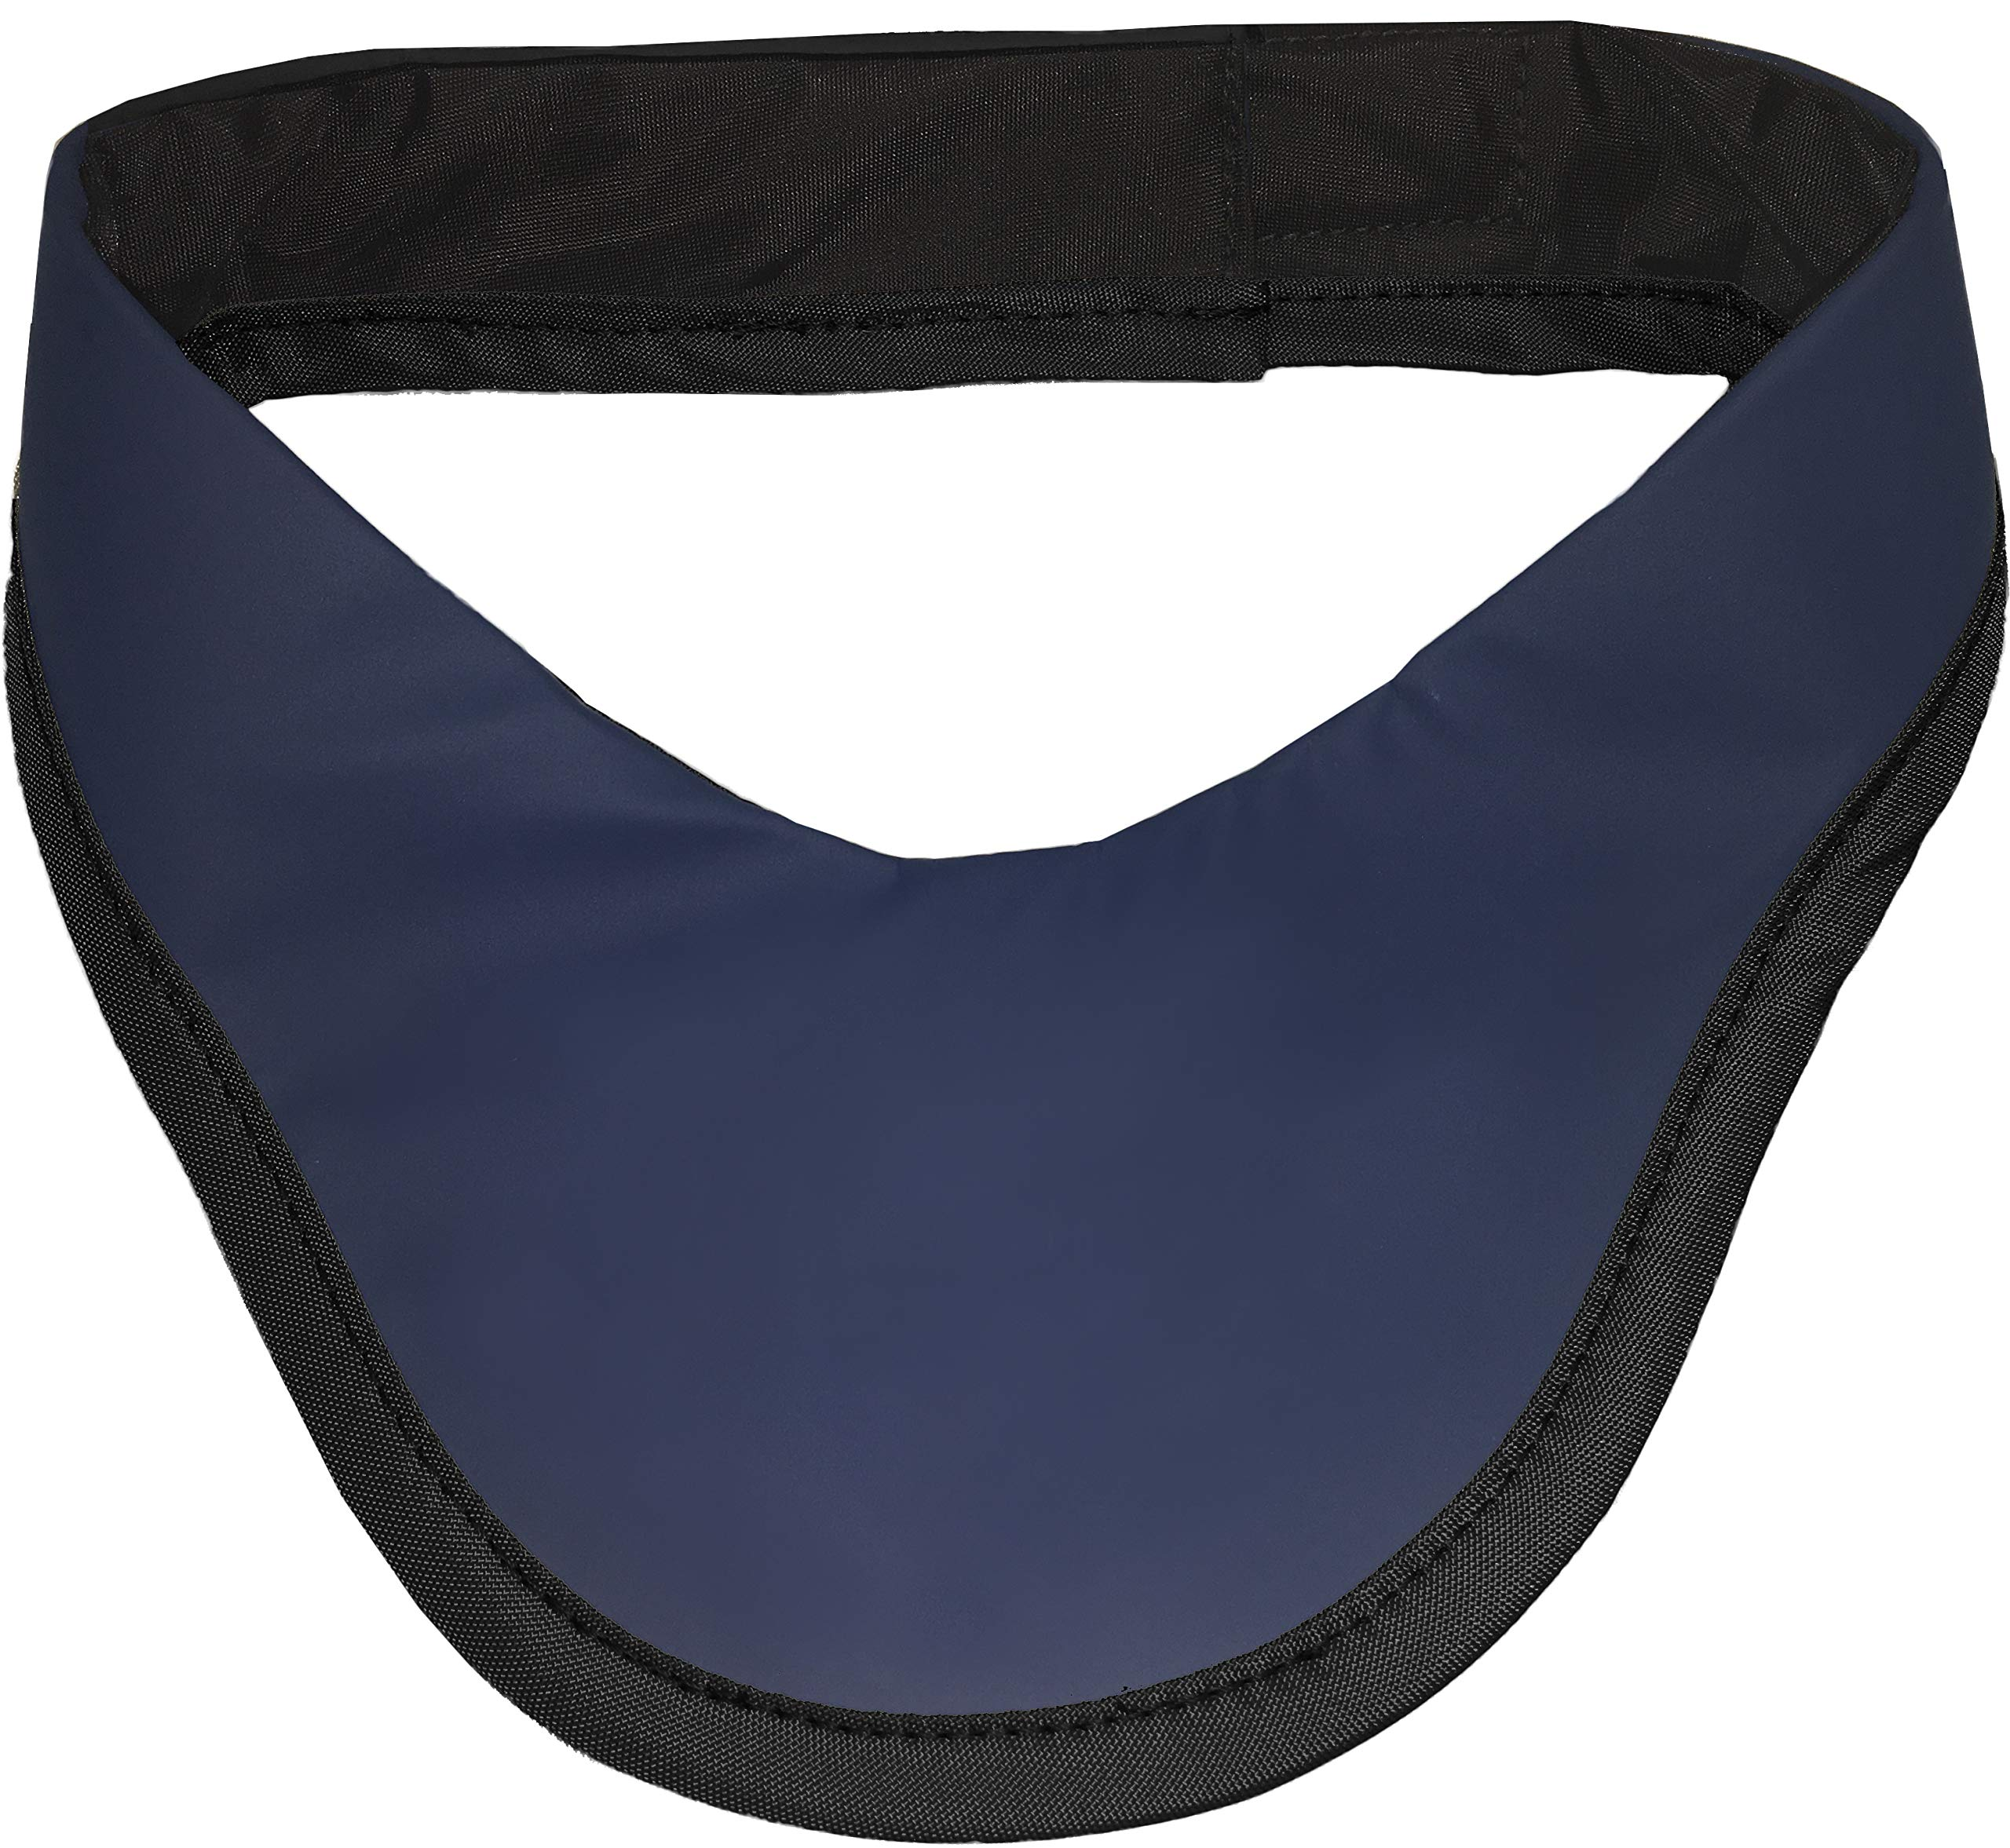 Thyroid Collar Lead Free Antibacterial Stain Resistant - Radiation Protection - Navy Blue